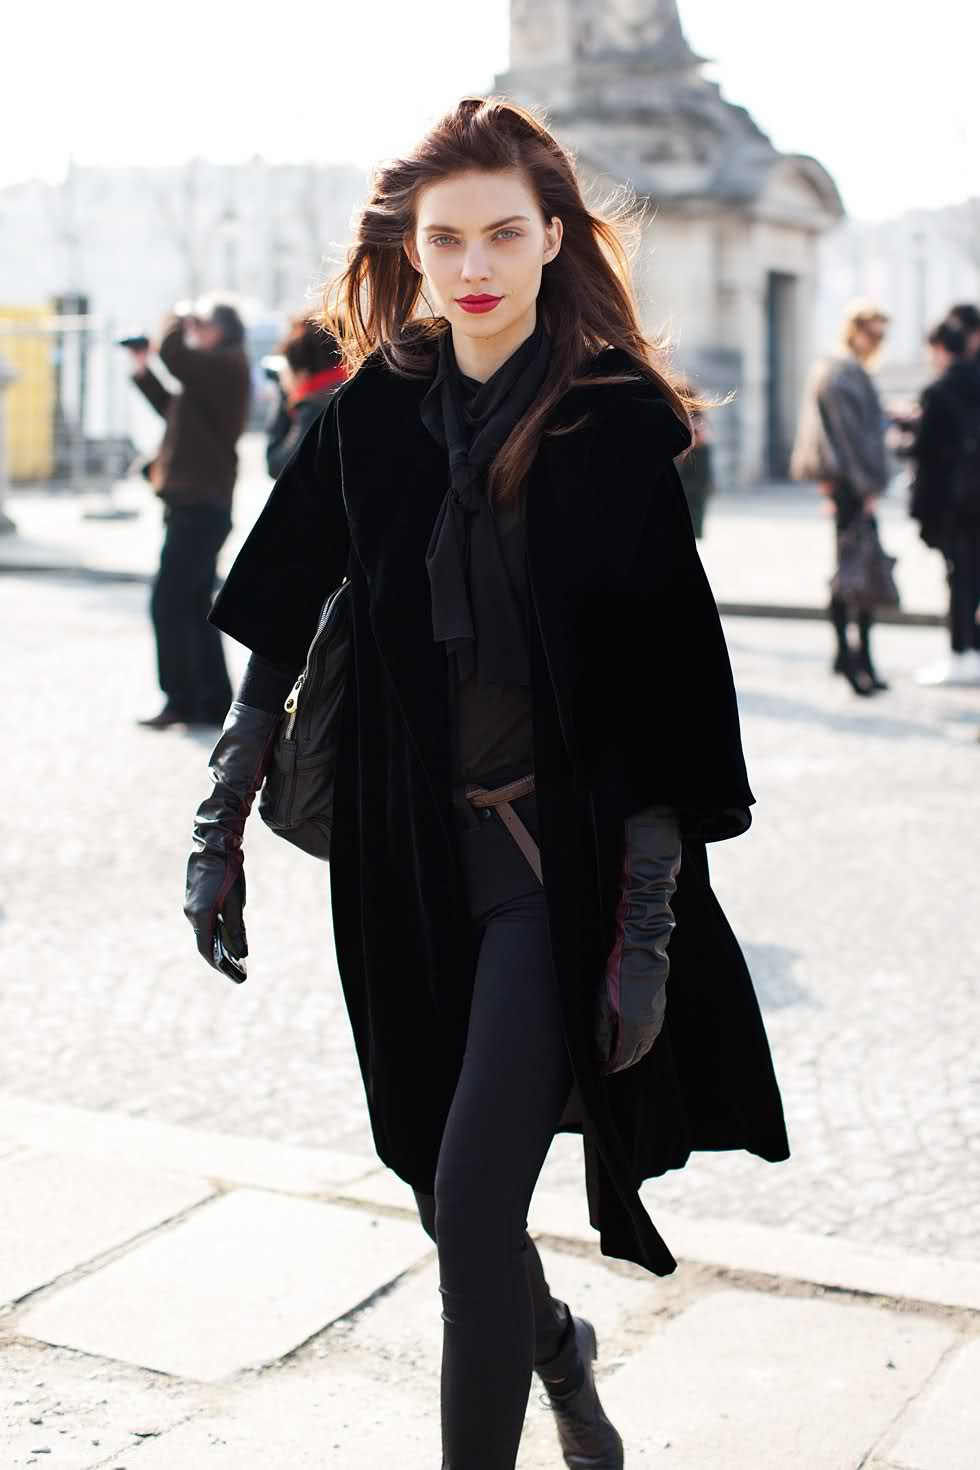 Look of the Day: All Black!